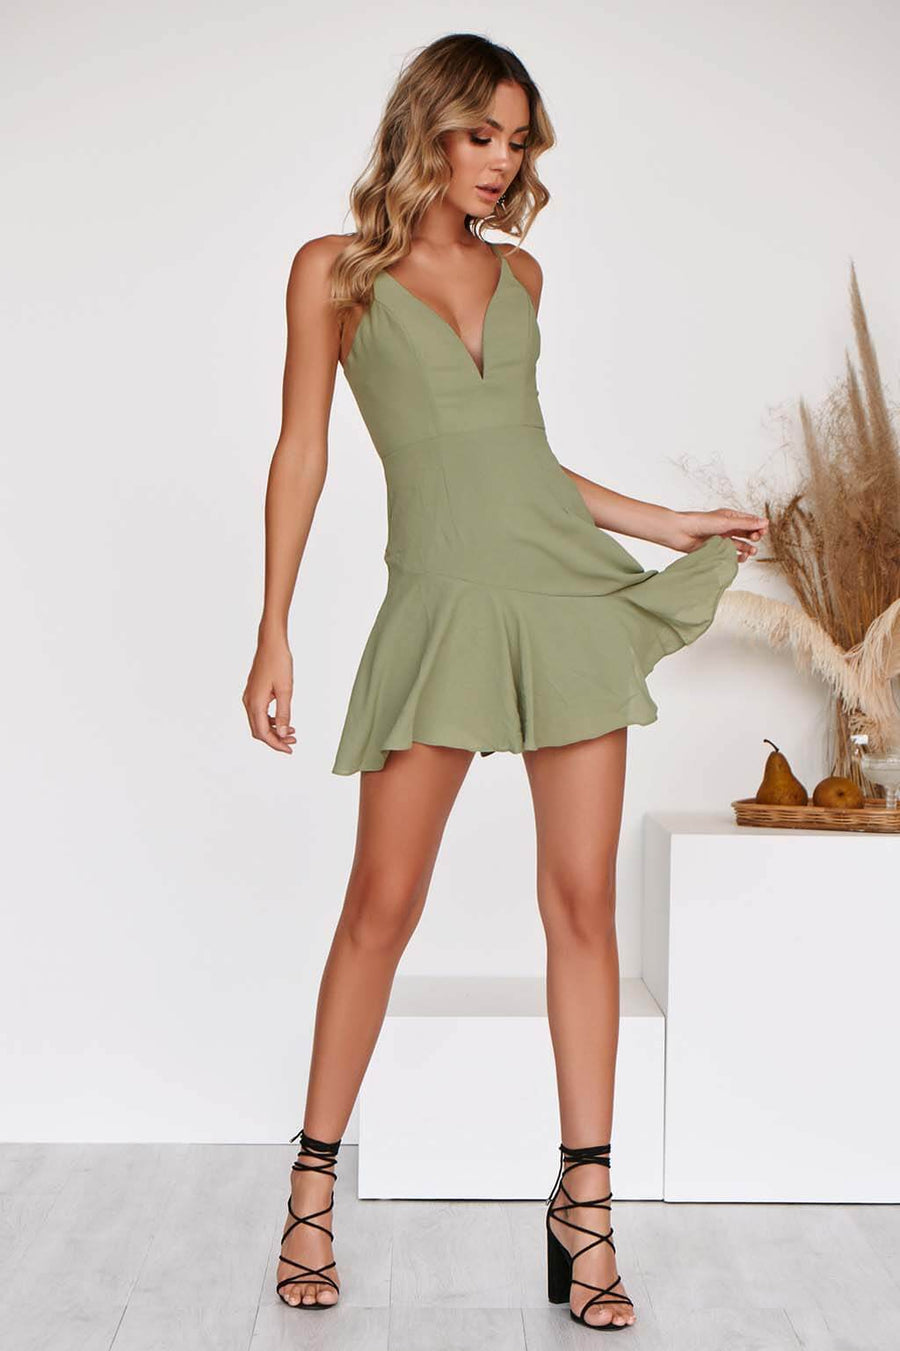 SAINT DRESS IN OLIVE